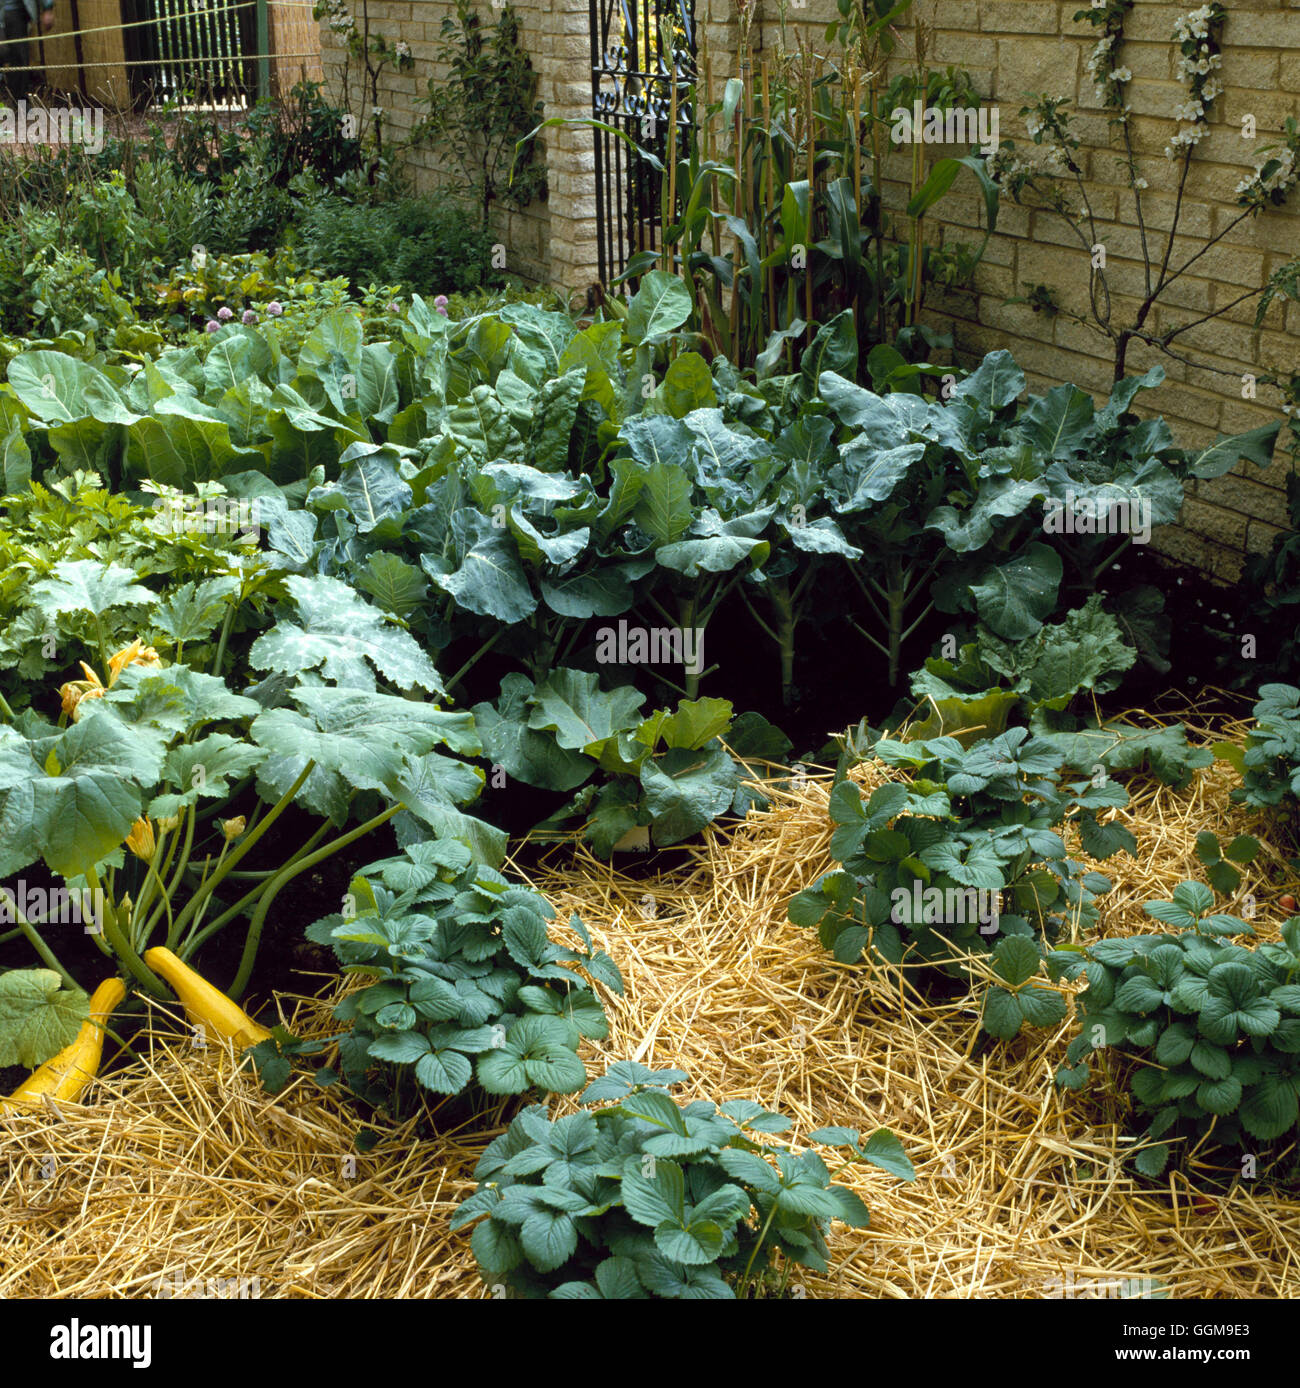 Vegetable and Fruit Garden - with Strawberries  Courgettes  Sweet Corn  Brassicas and fan-trained Apple tree   VFR0193 - Stock Image